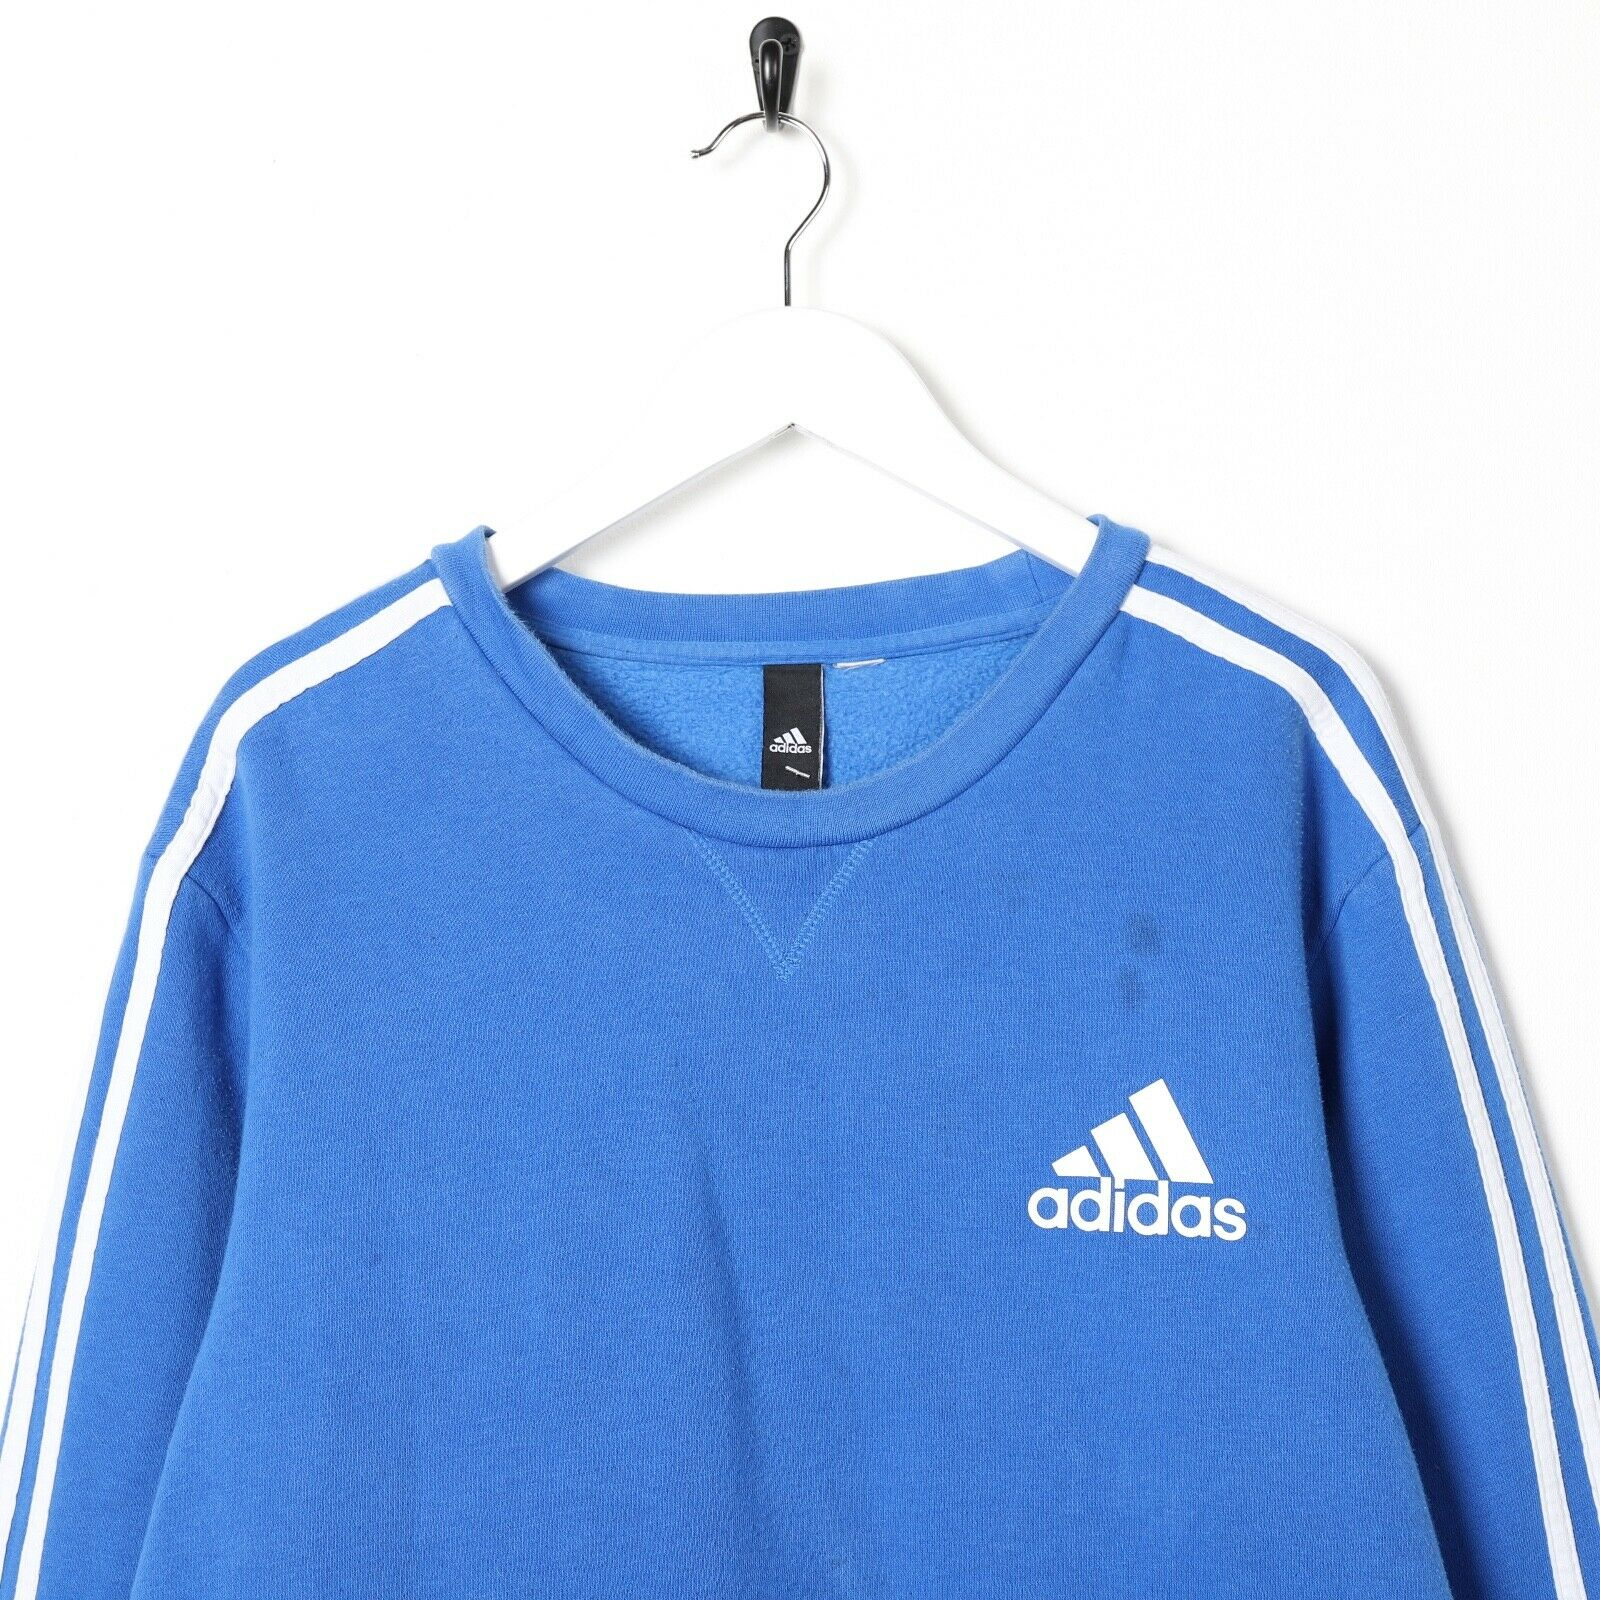 Vintage ADIDAS Small Logo Sweatshirt Jumper Blue Large L